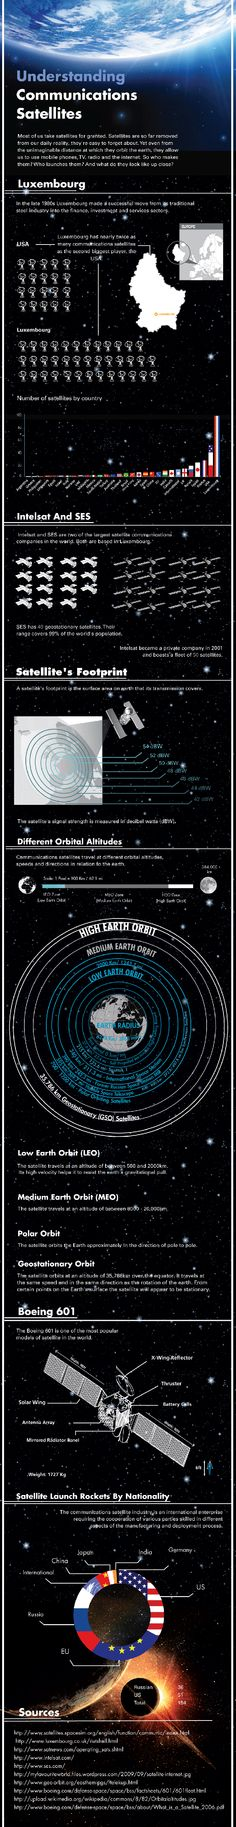 Understanding communications satellites #infographic